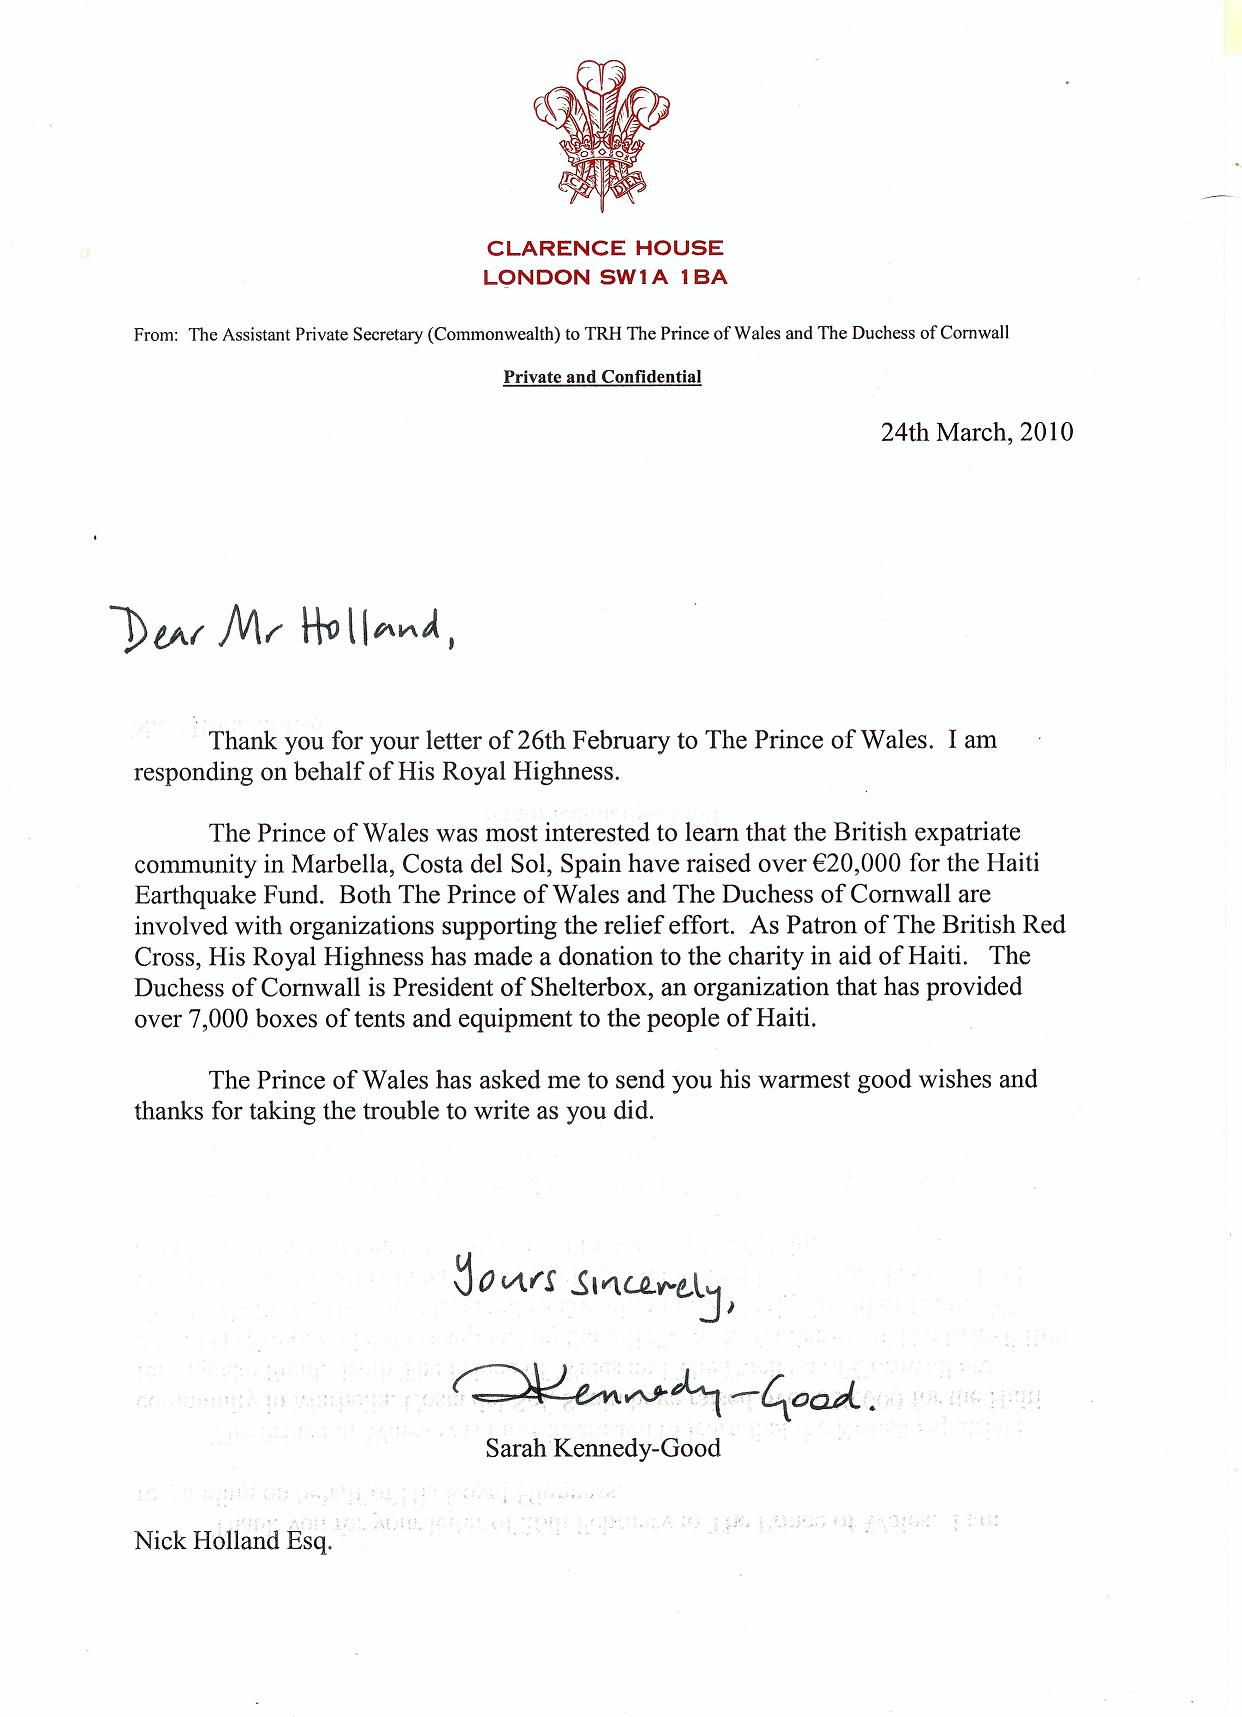 Letter from Clarence House on behalf of His Royal Highness The Prince of Wales.